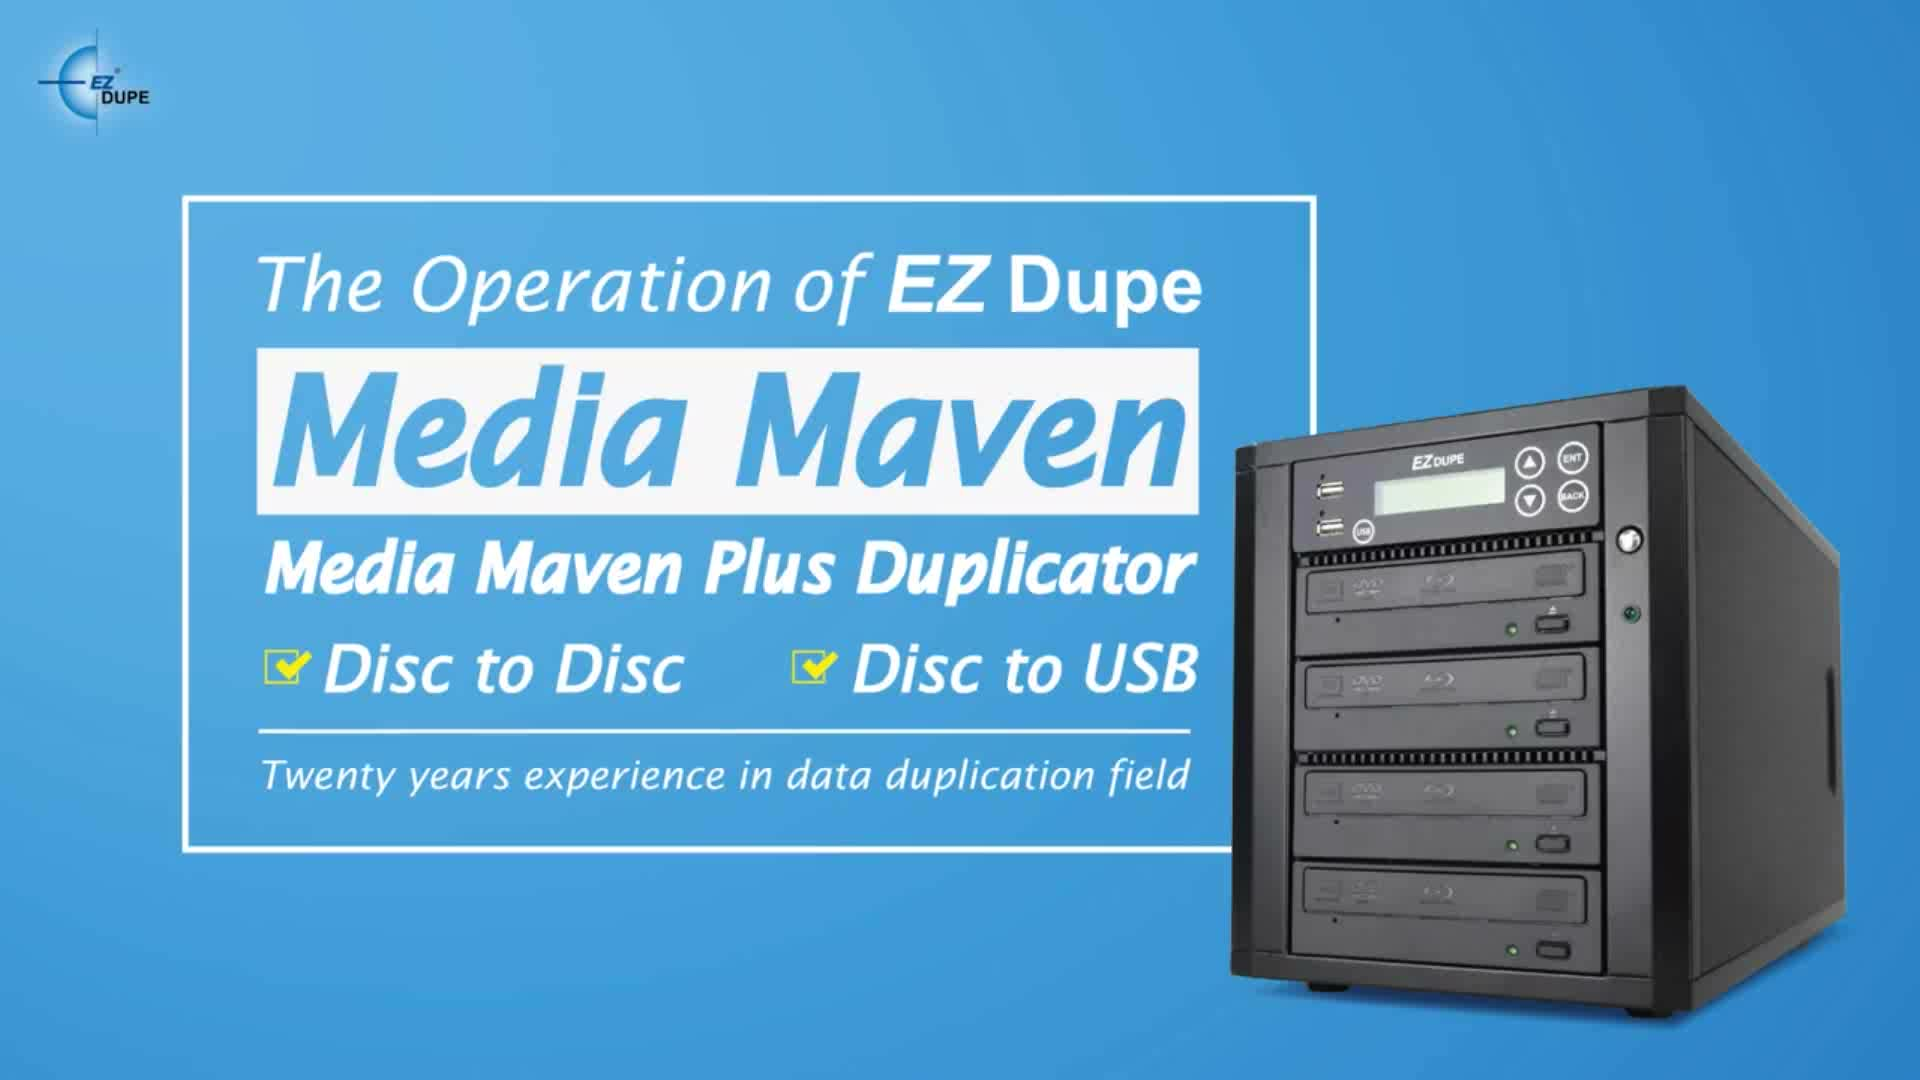 EZ Dupe Media Maven Series Duplicator with USB copy to BD CD DVD Duplicator